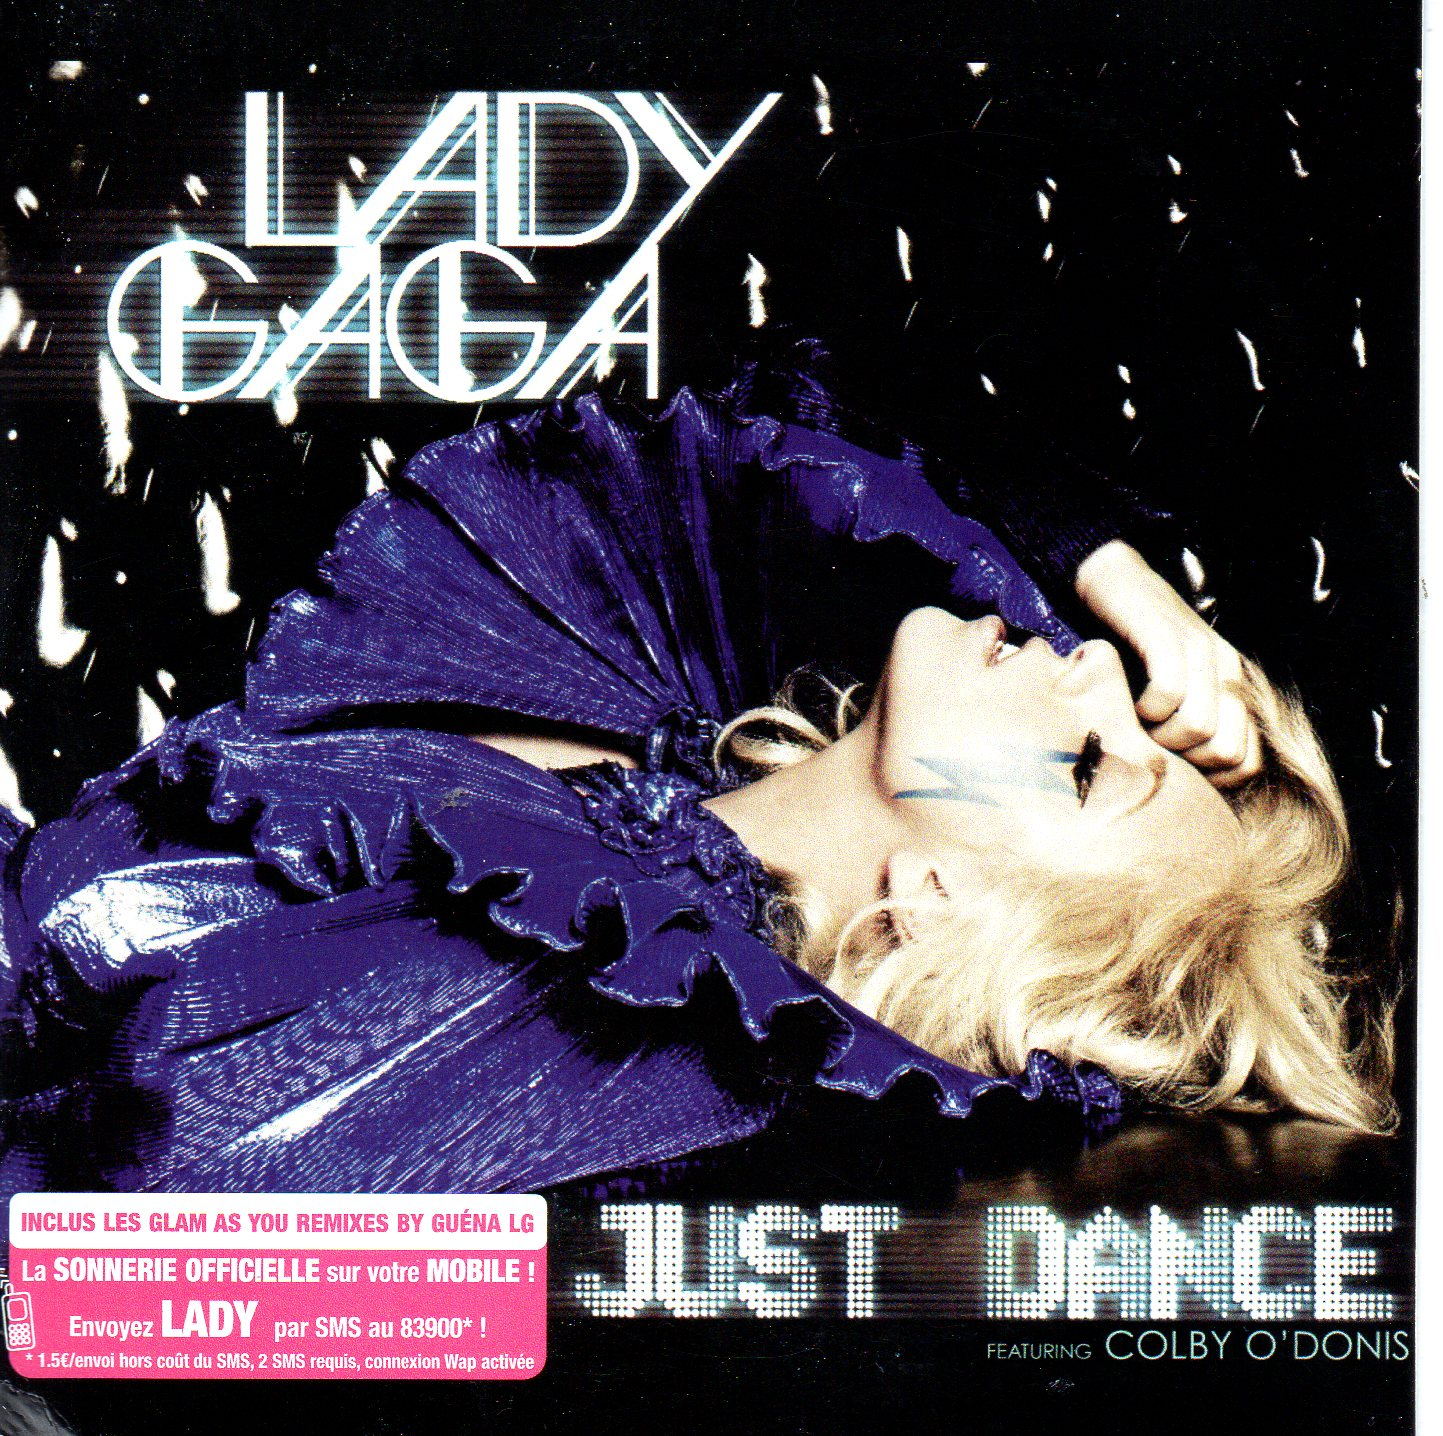 LADY GAGA - Just Dance 3-track CARD SLEEVE - CD single